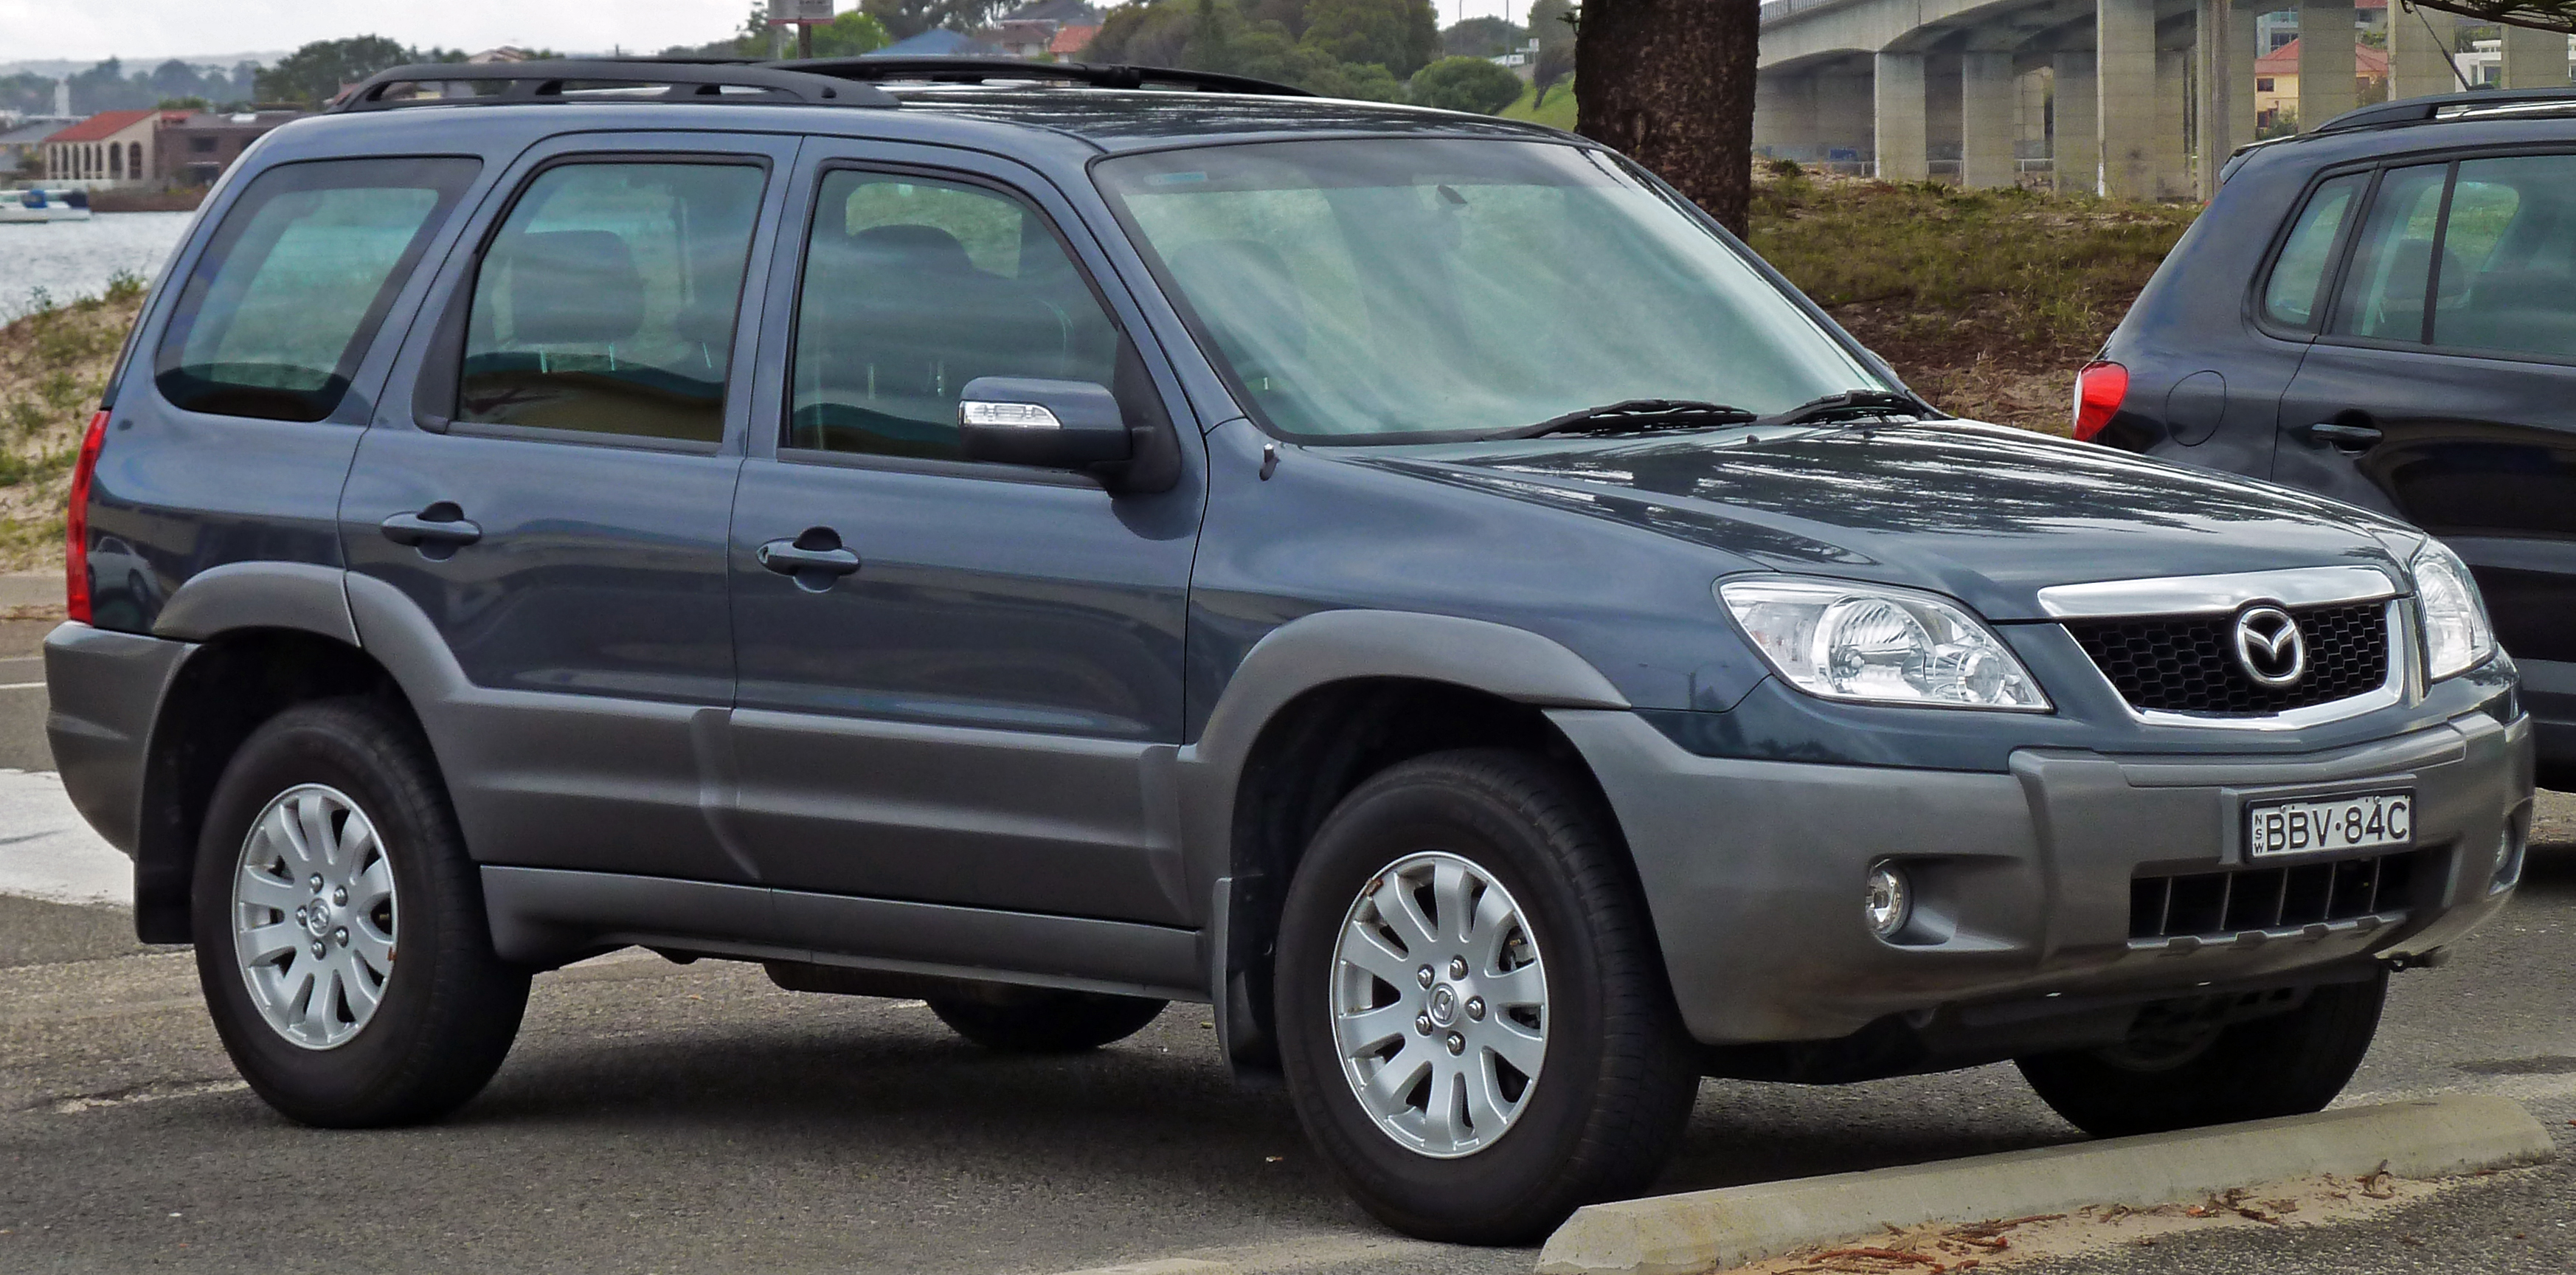 File:2007 Mazda Tribute (MY06) V6 wagon (2010-09-19